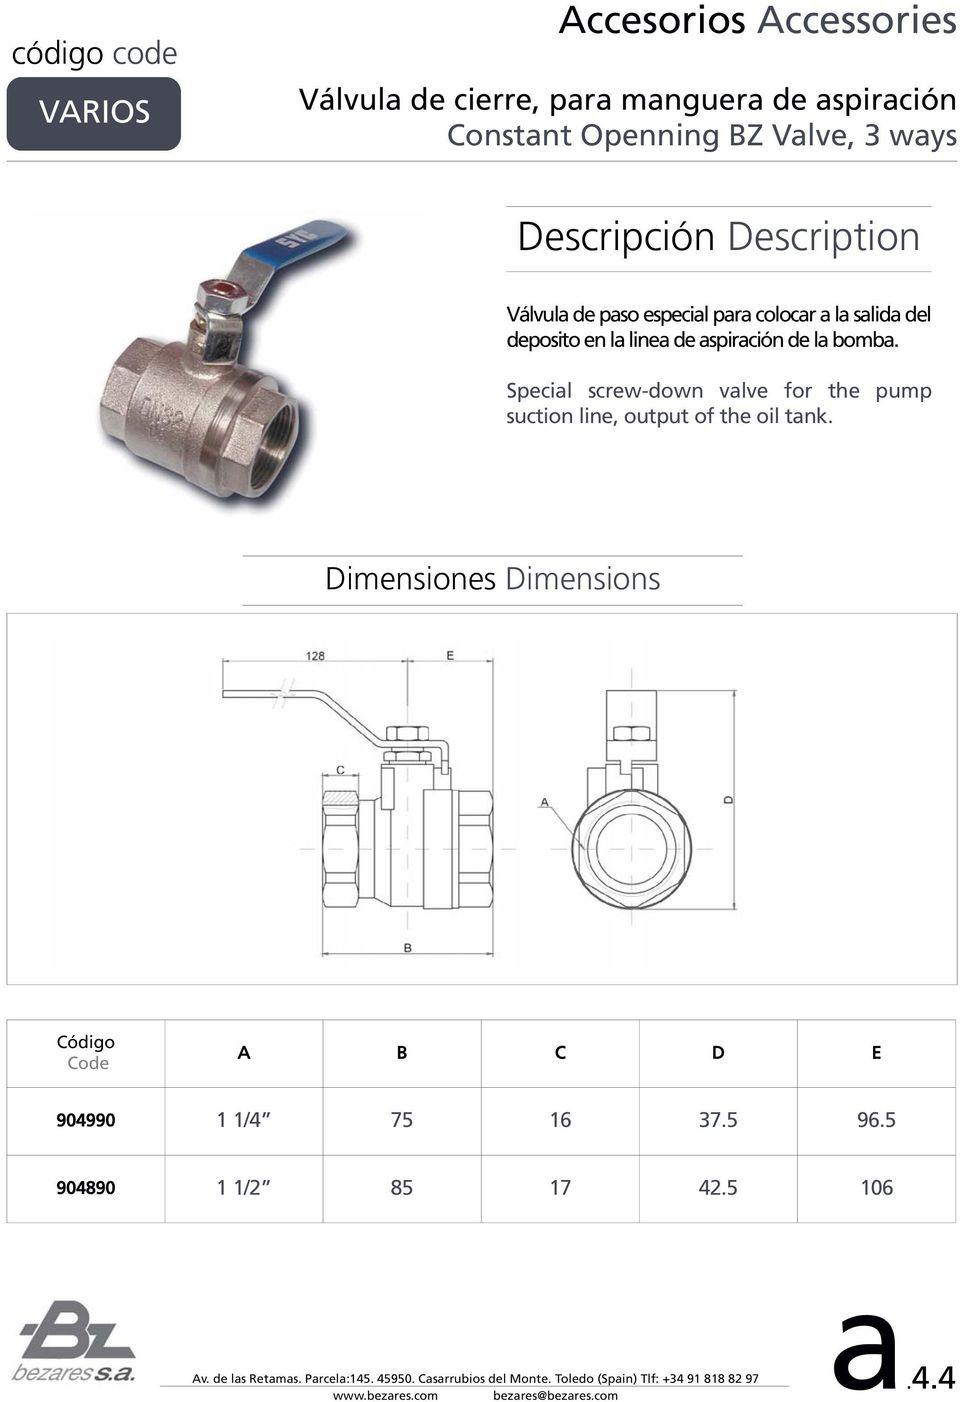 aspiración de la bomba. Special screw-down valve for the pump suction line, output of the oil tank.